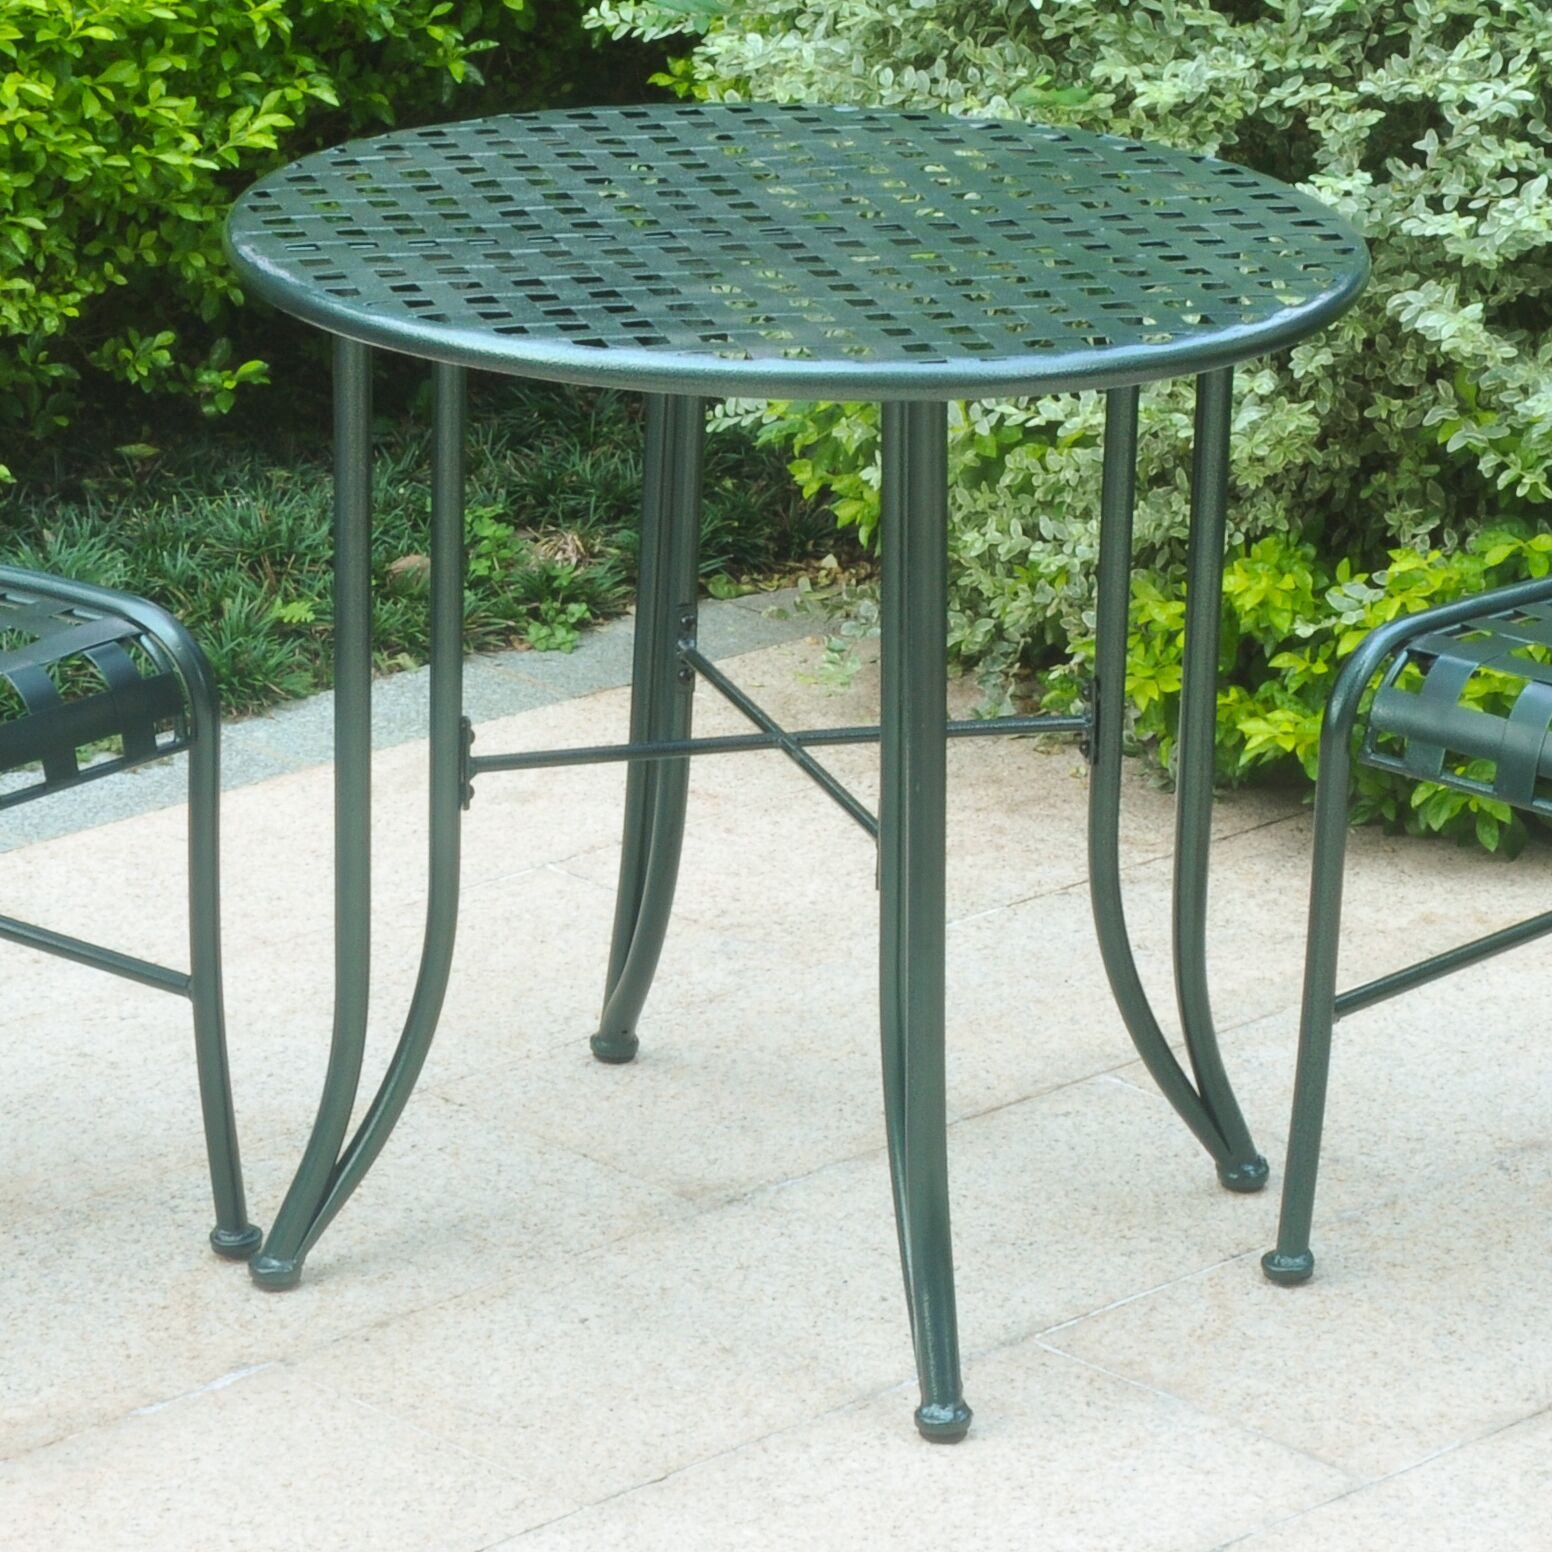 Dalmatia Bistro Table Finish: Verdigris